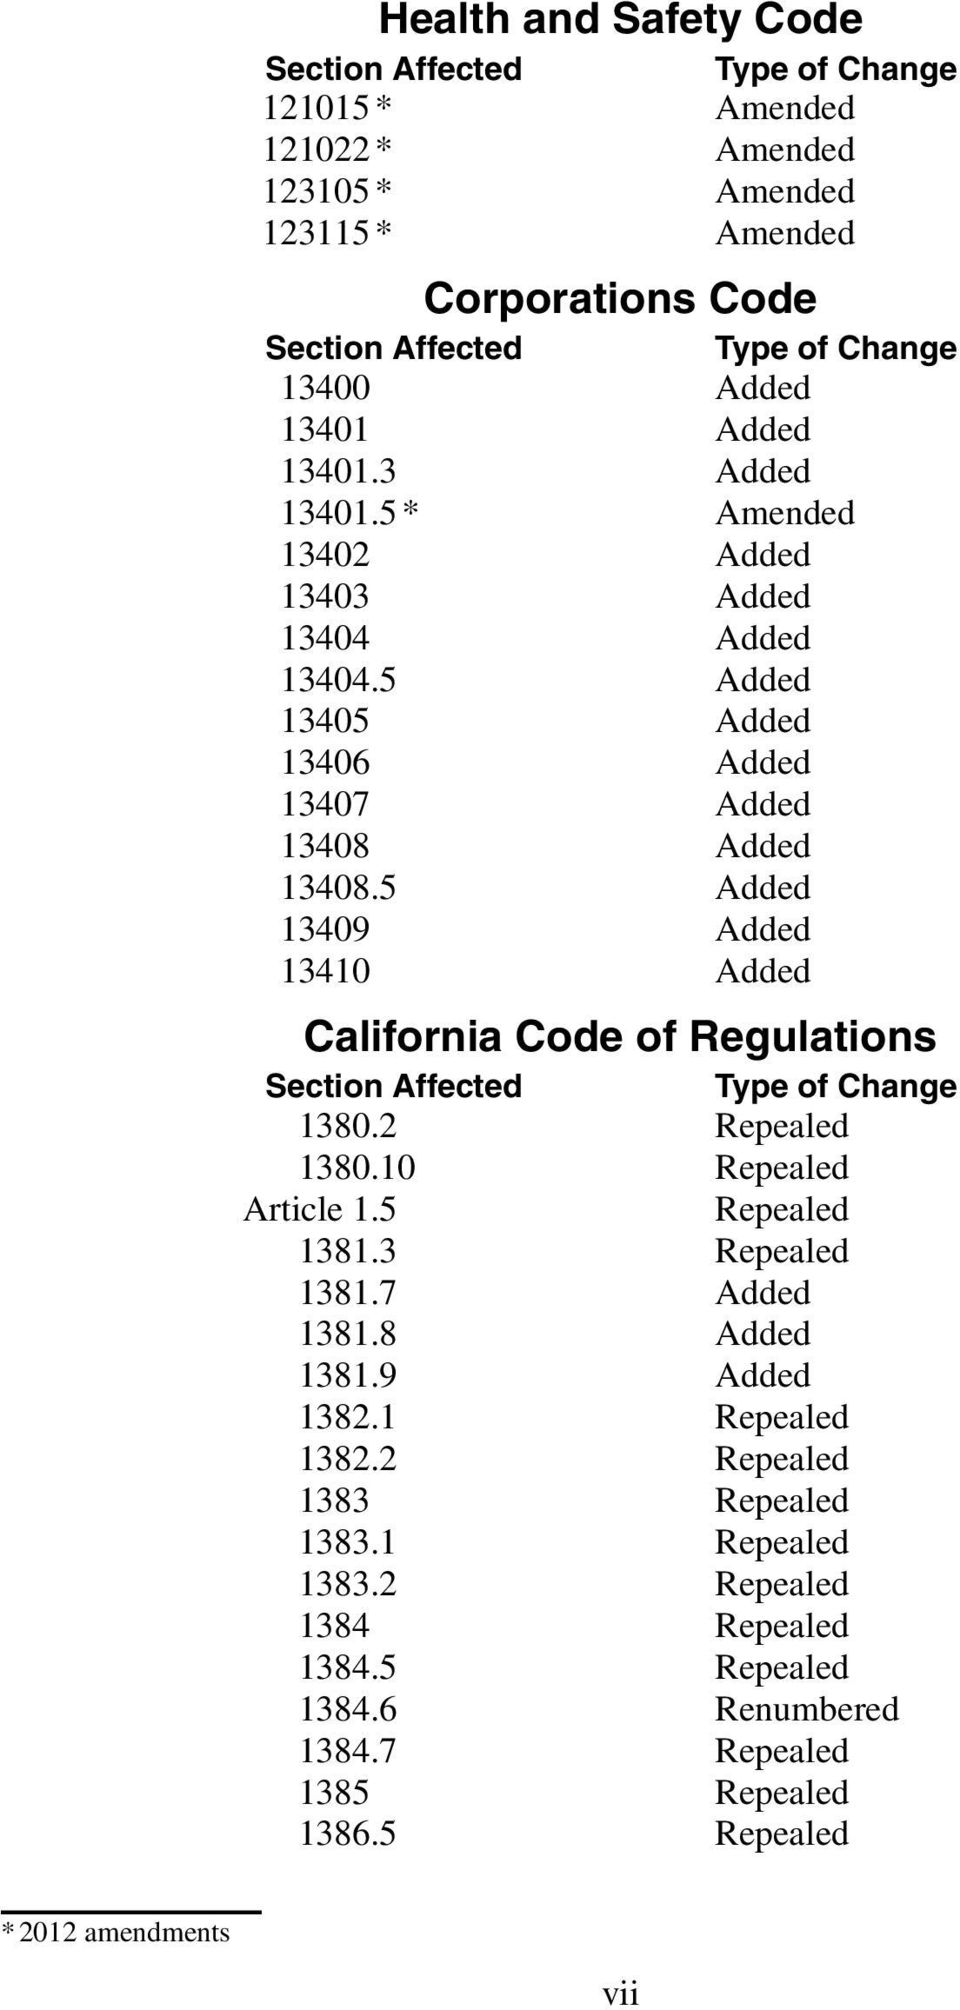 5 Added 13409 Added 13410 Added California Code of Regulations Section Affected Type of Change 1380.2 Repealed 1380.10 Repealed Article 1.5 Repealed 1381.3 Repealed 1381.7 Added 1381.